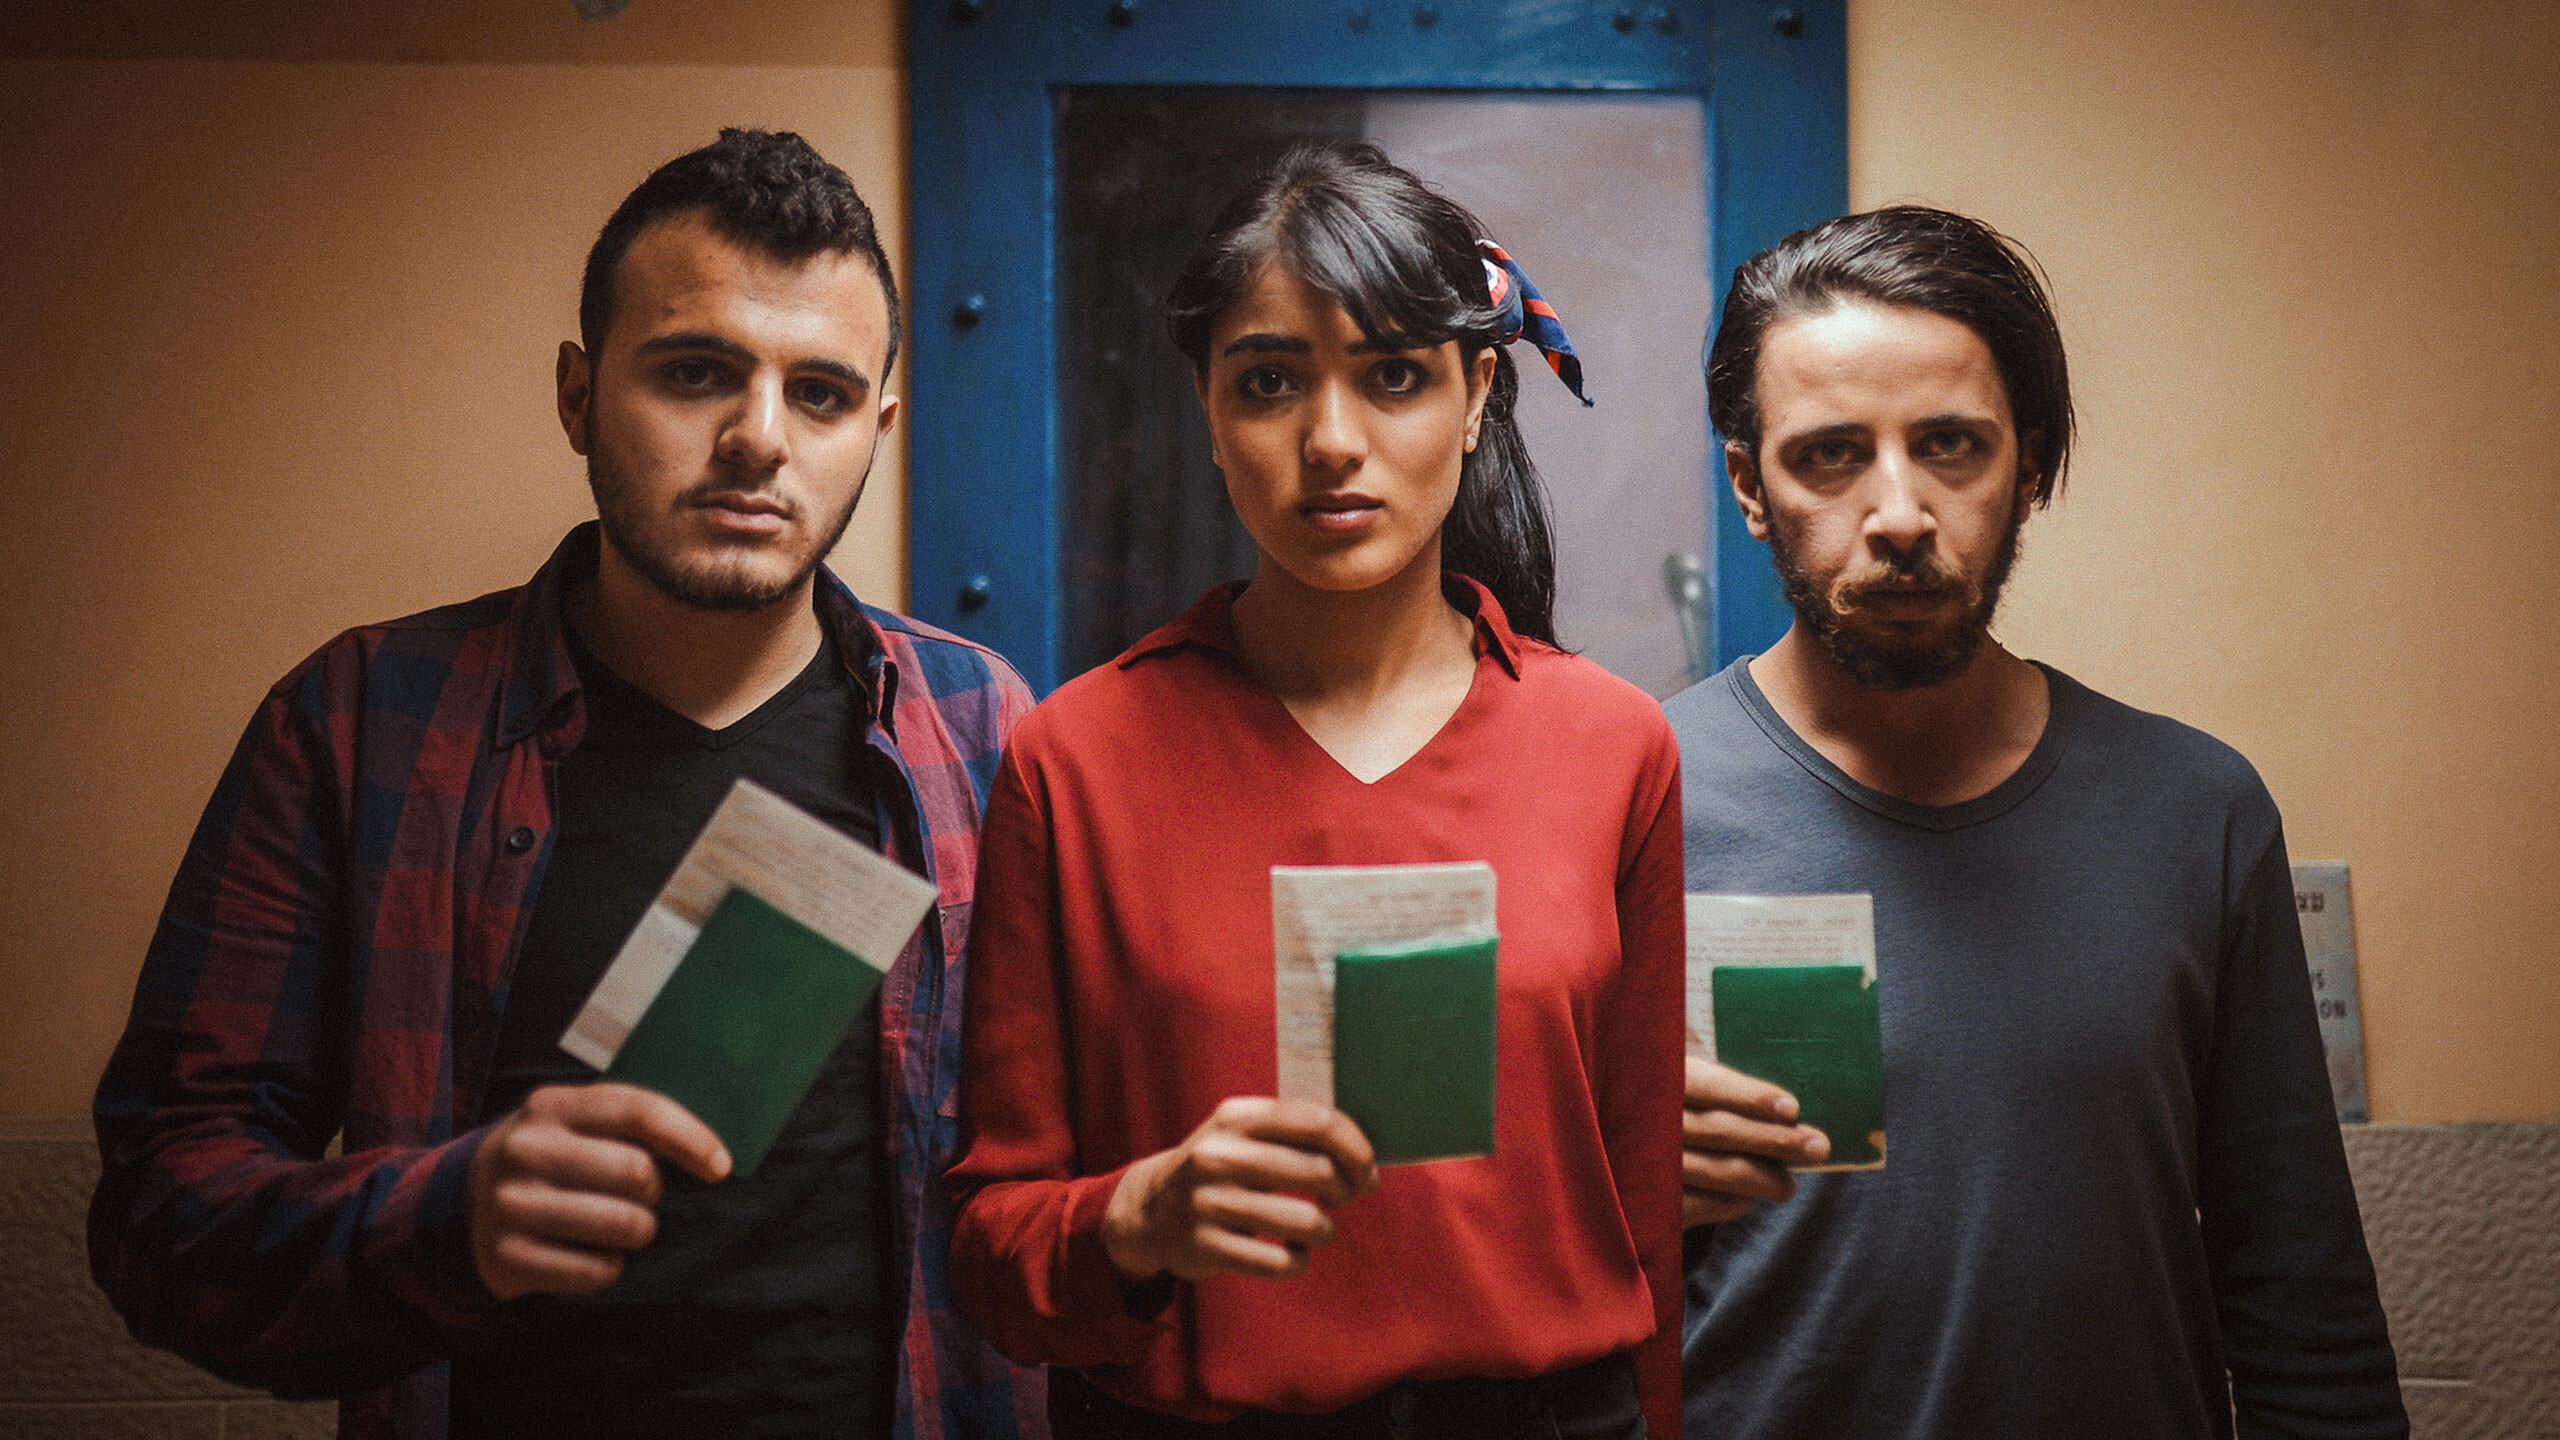 Netflix launches a 'Palestinian Stories' collection featuring award-winning films